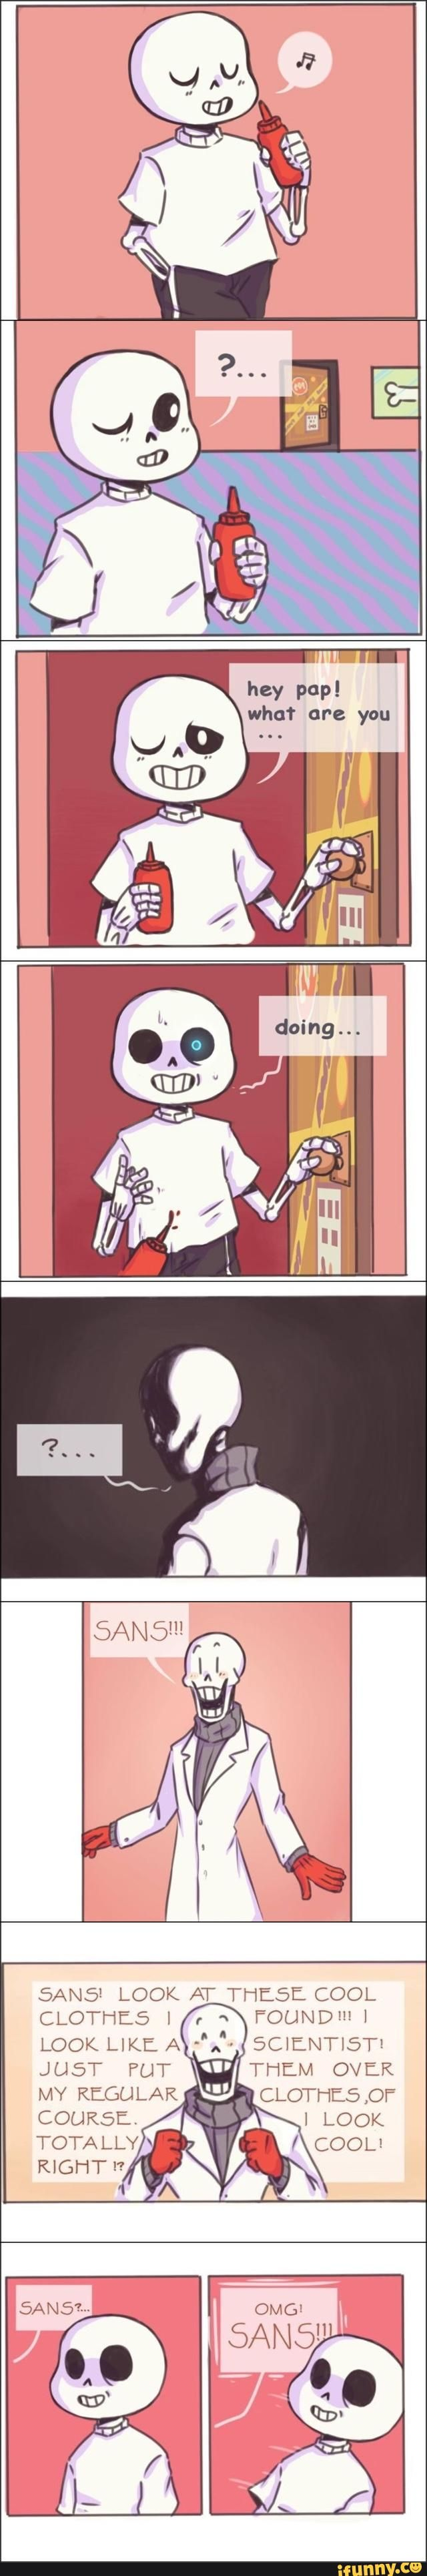 undertale, sans, papyrus wearing Gaster's clothes. OMG, PAPYRUS! Don't go scaring people like that!